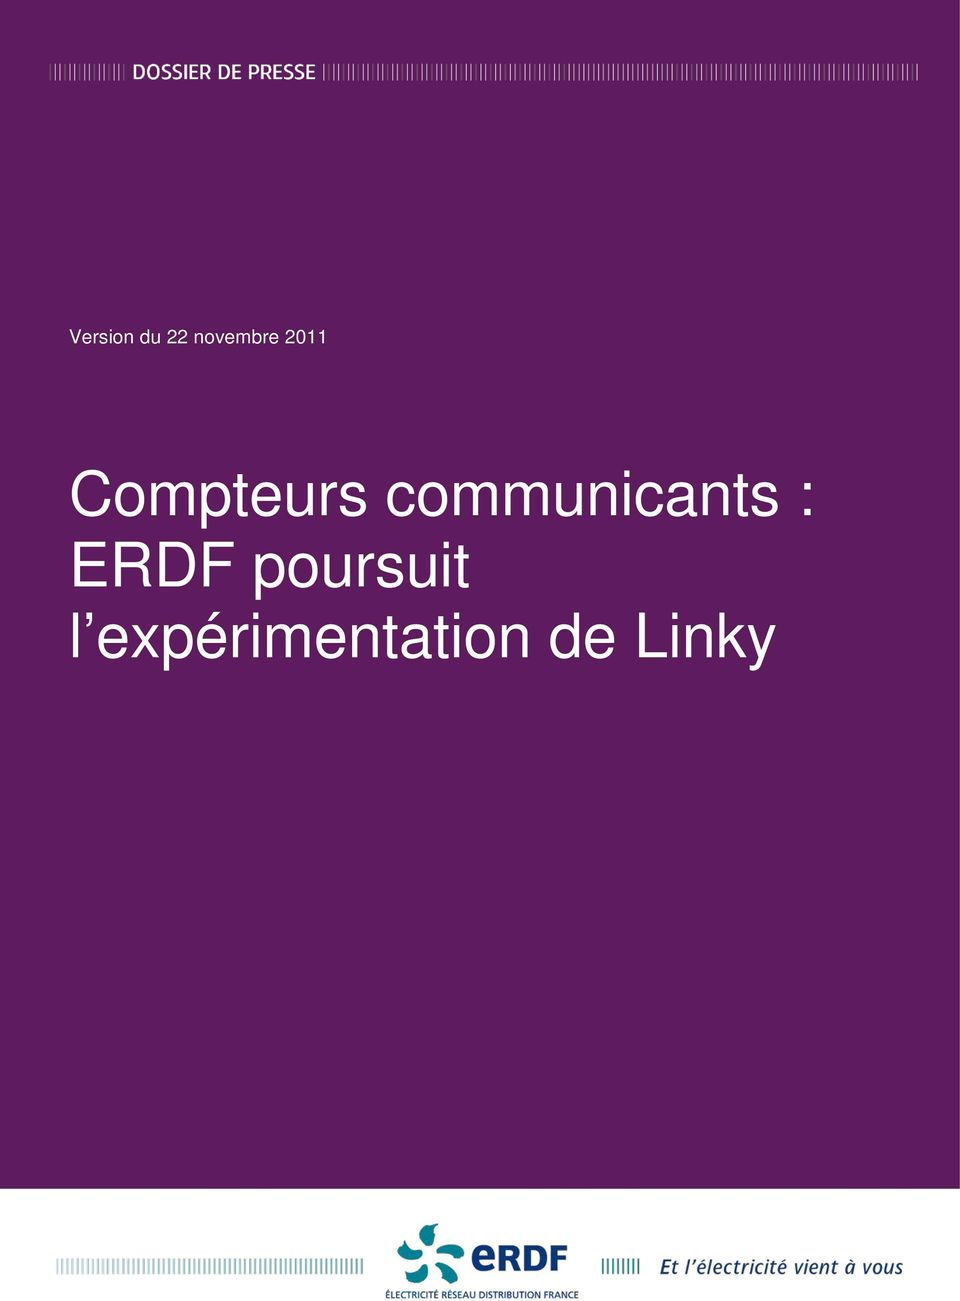 communicants : ERDF